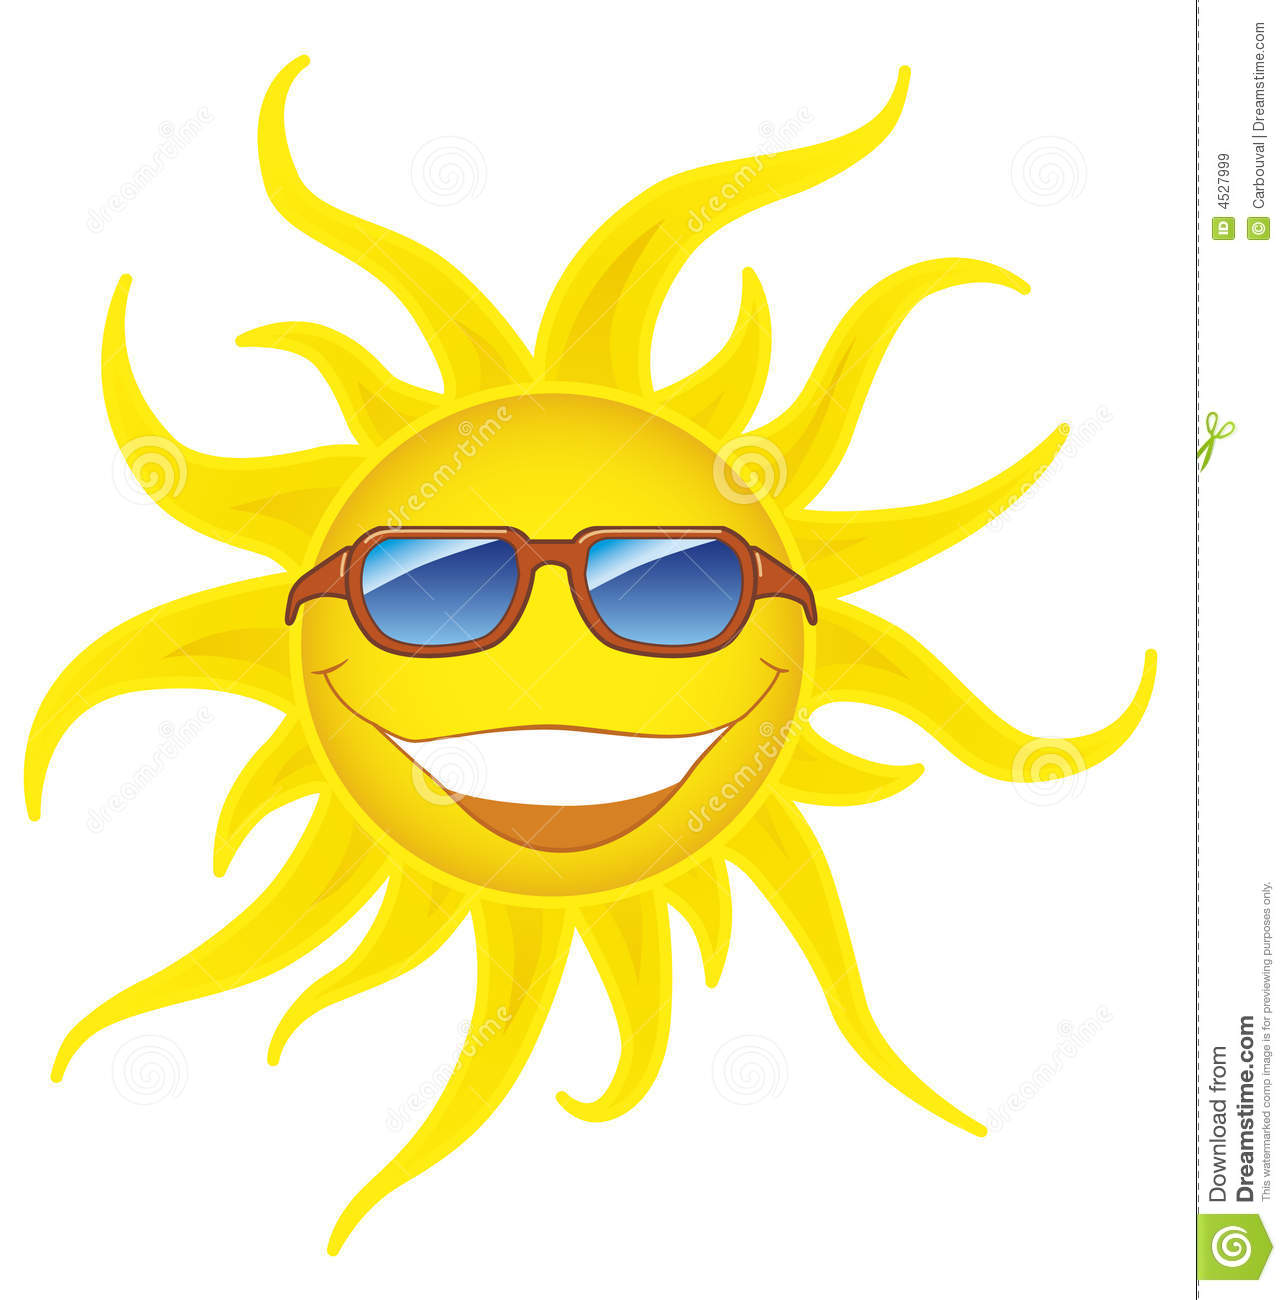 Smiling sun with sunglasses - Royalty Free Stock Photo Download Smiling Sun With Sunglasses